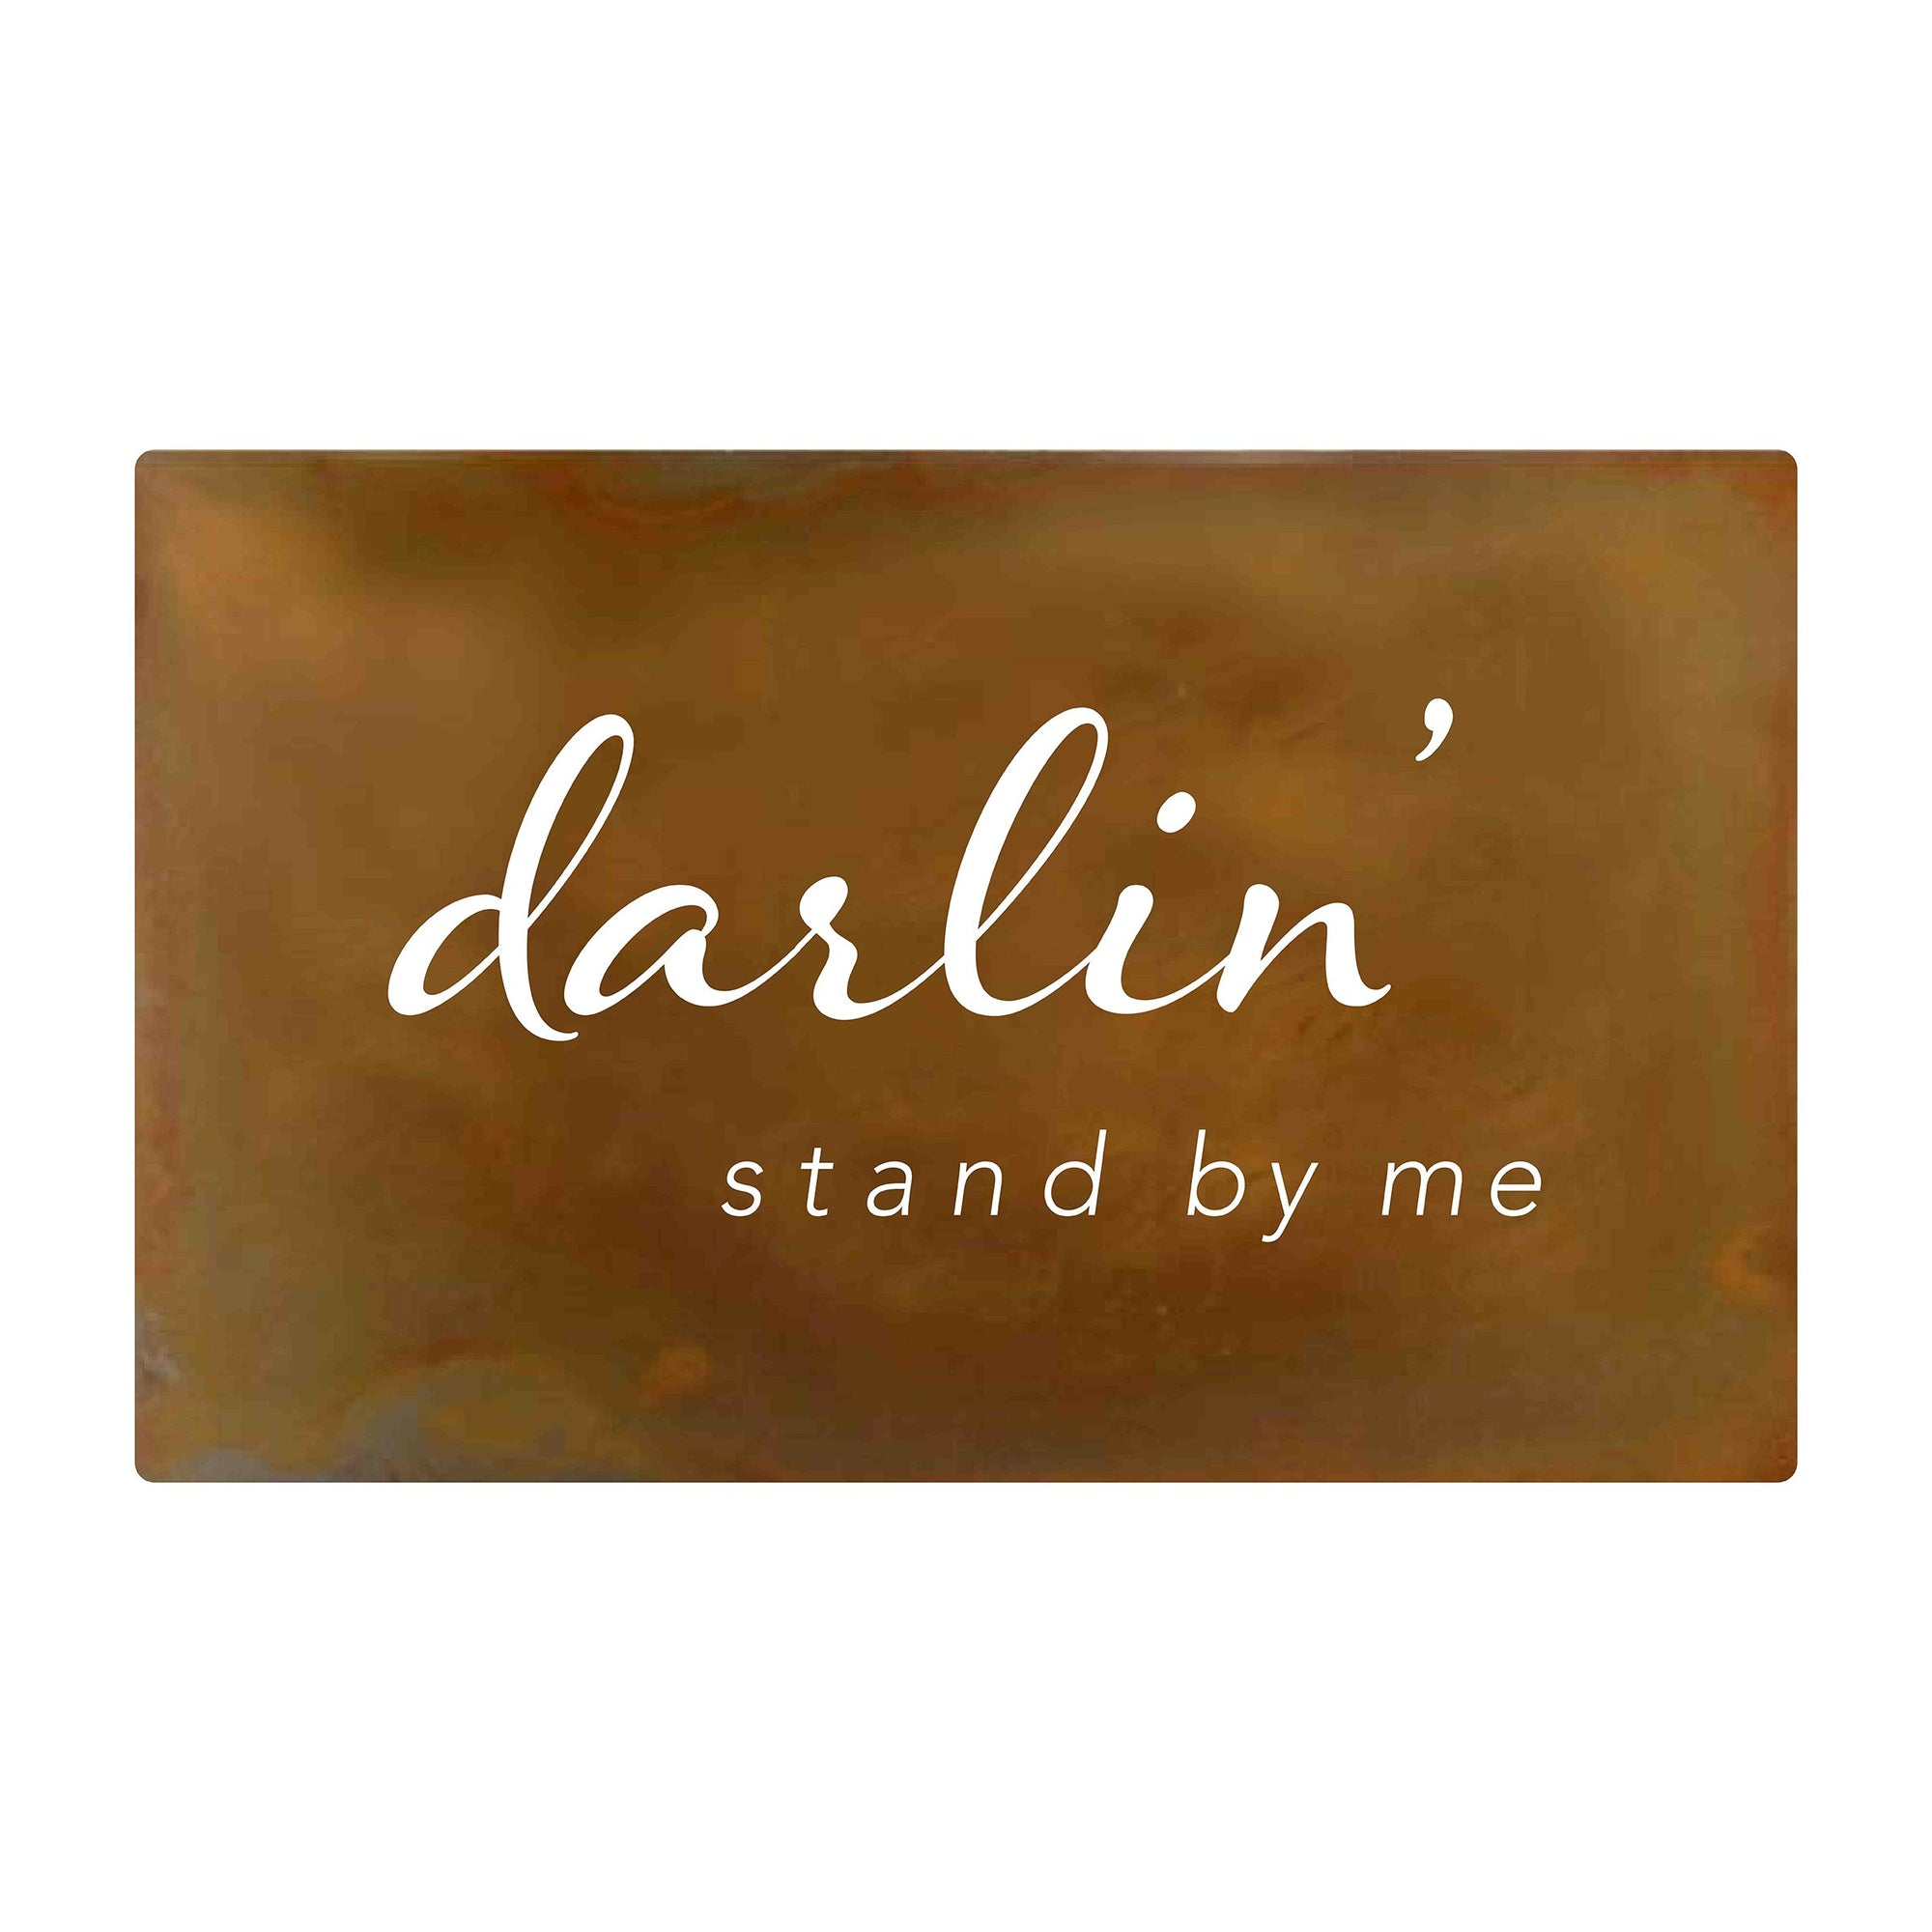 Darlin' Stand by Me, Song Lyric Metal Wall Art - Walking Pants Curiosities